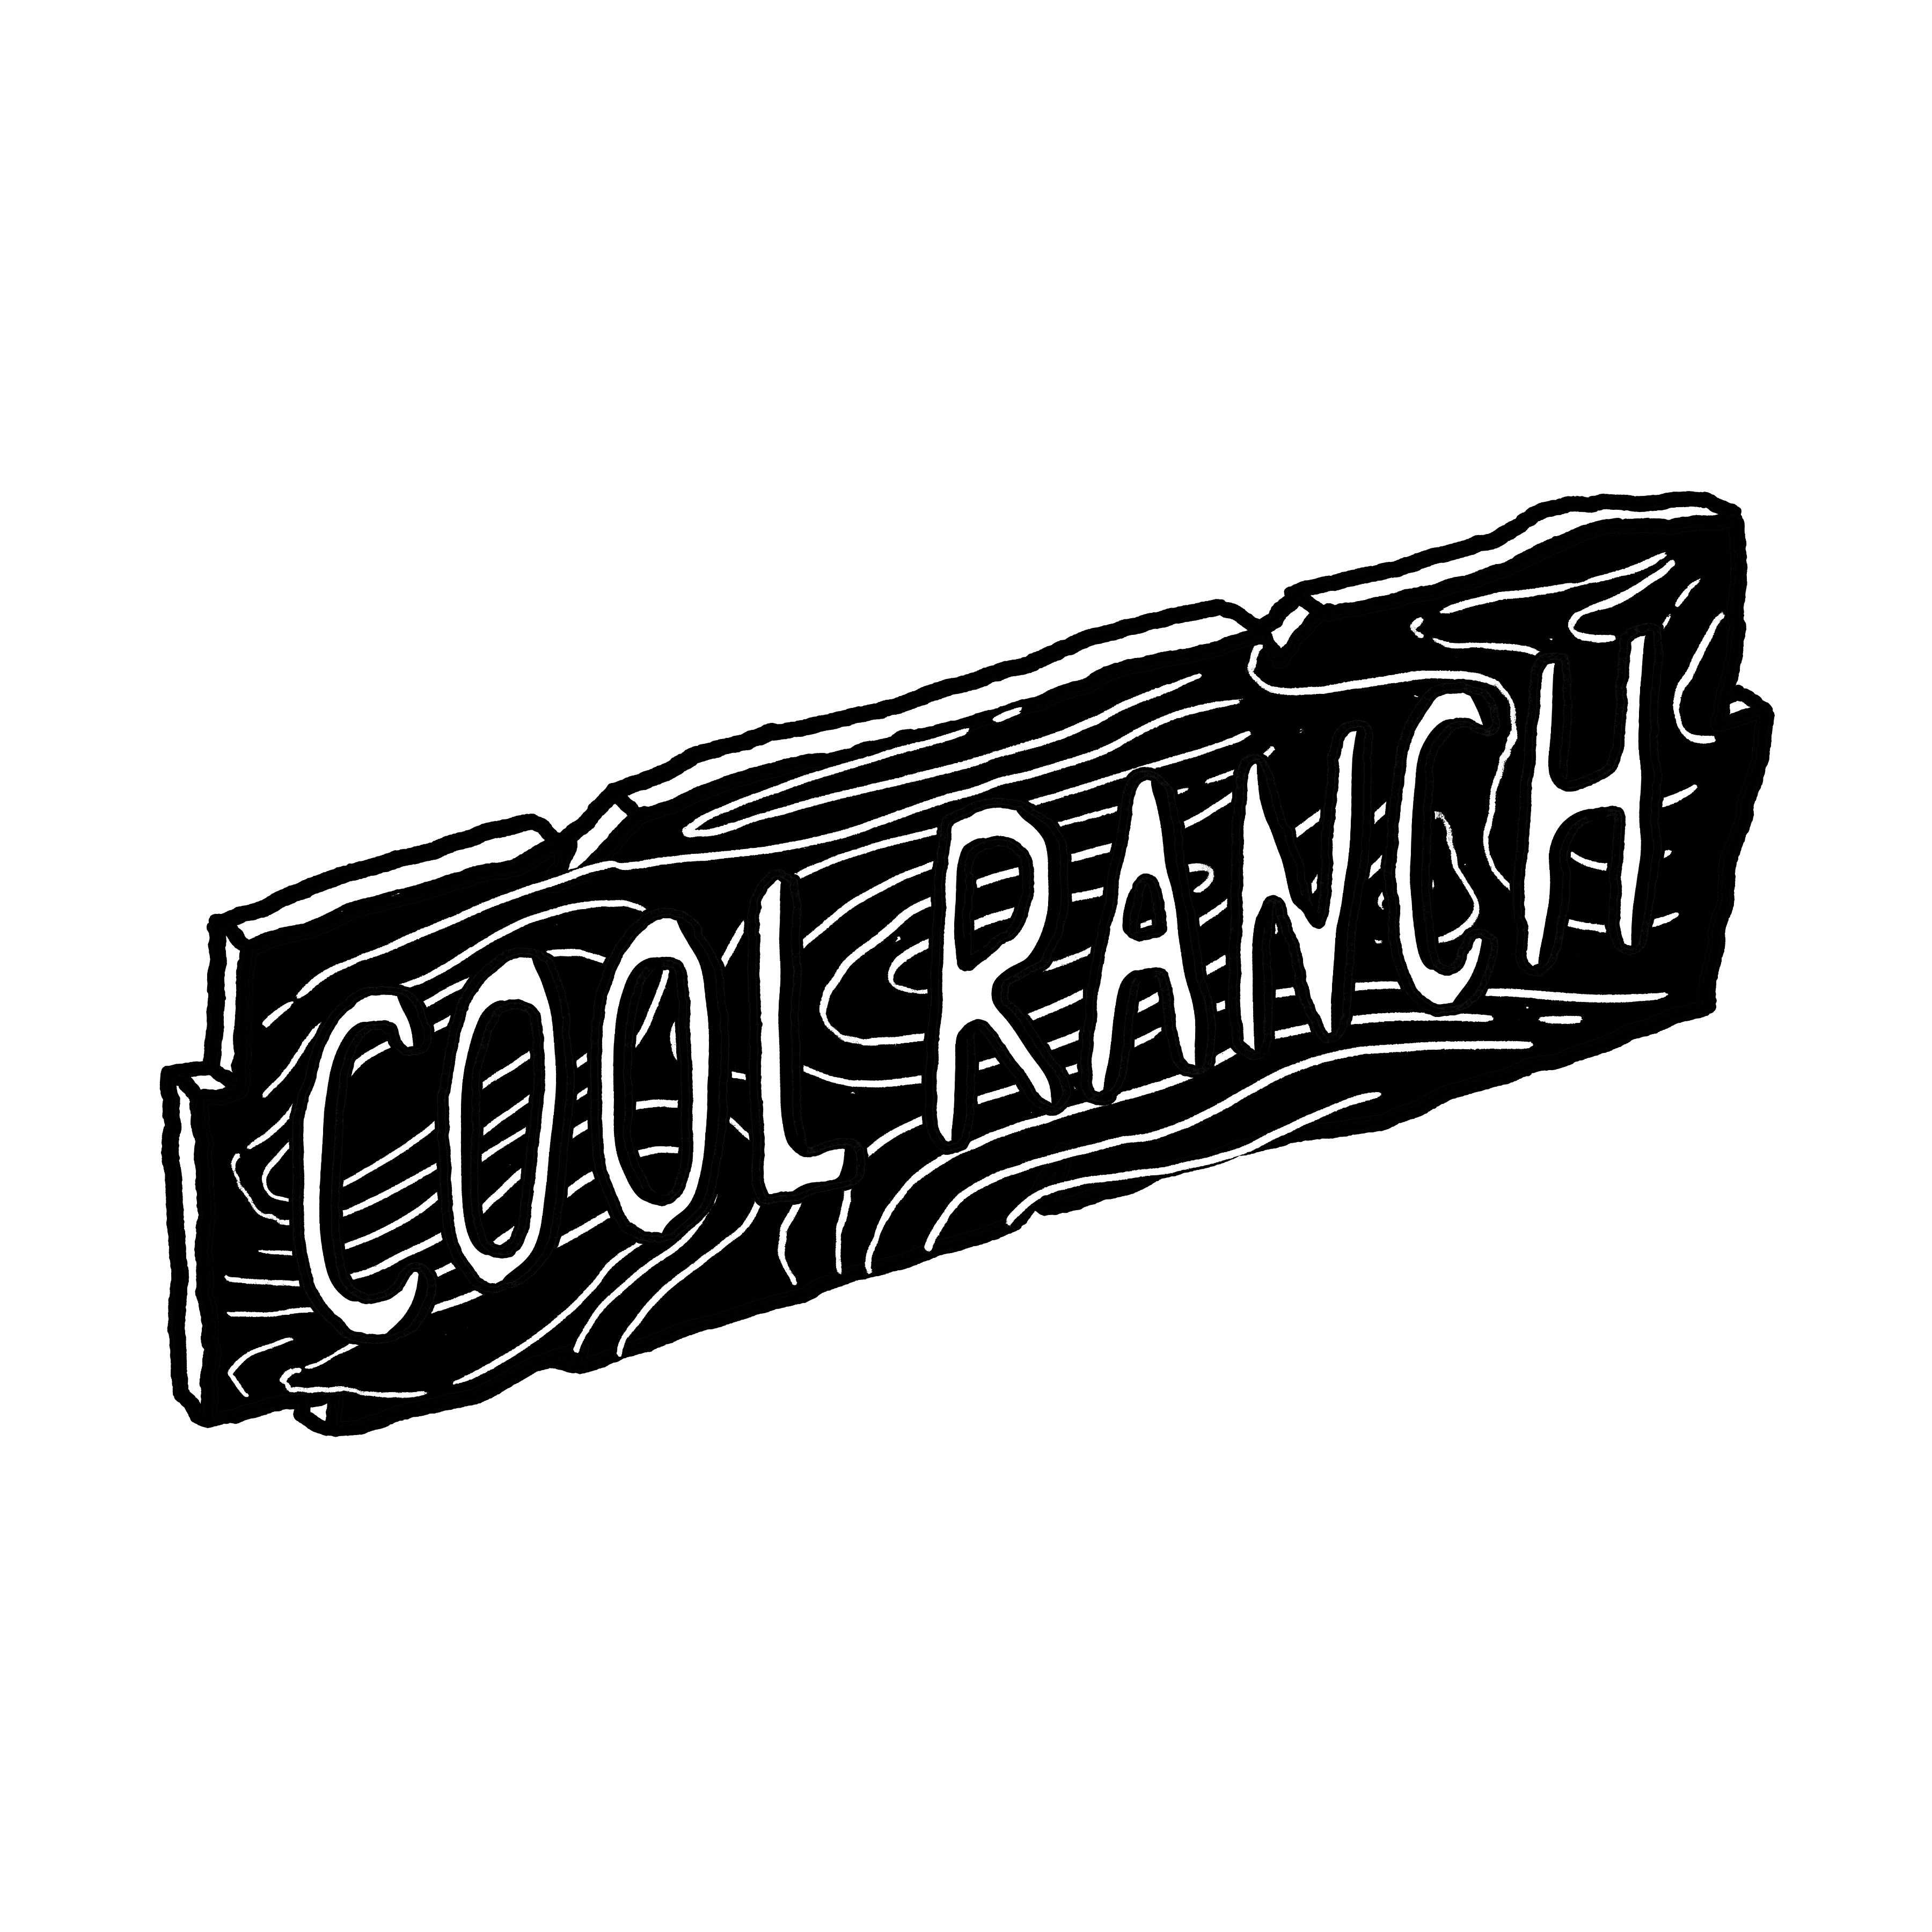 Chrissy/COOL RANCH VOL. 3 12""